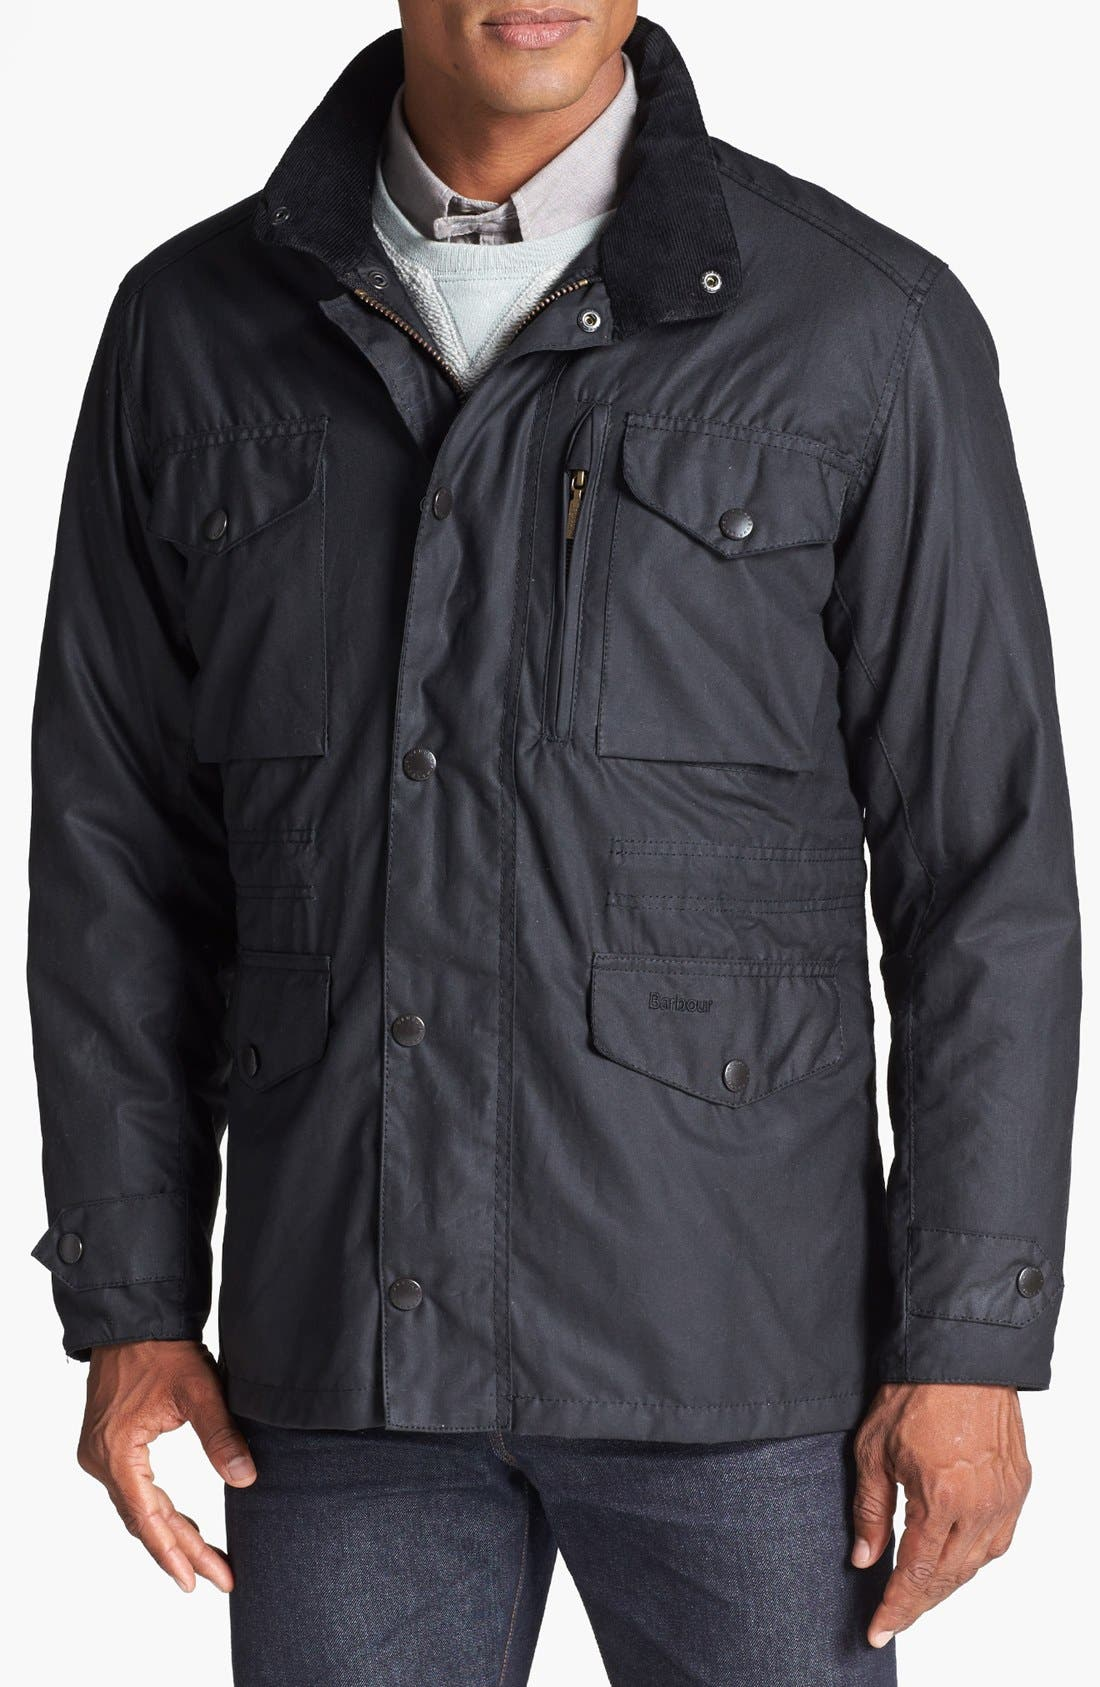 Alternate Image 1 Selected - Barbour 'Sapper' Weatherproof Waxed Relaxed Fit Jacket